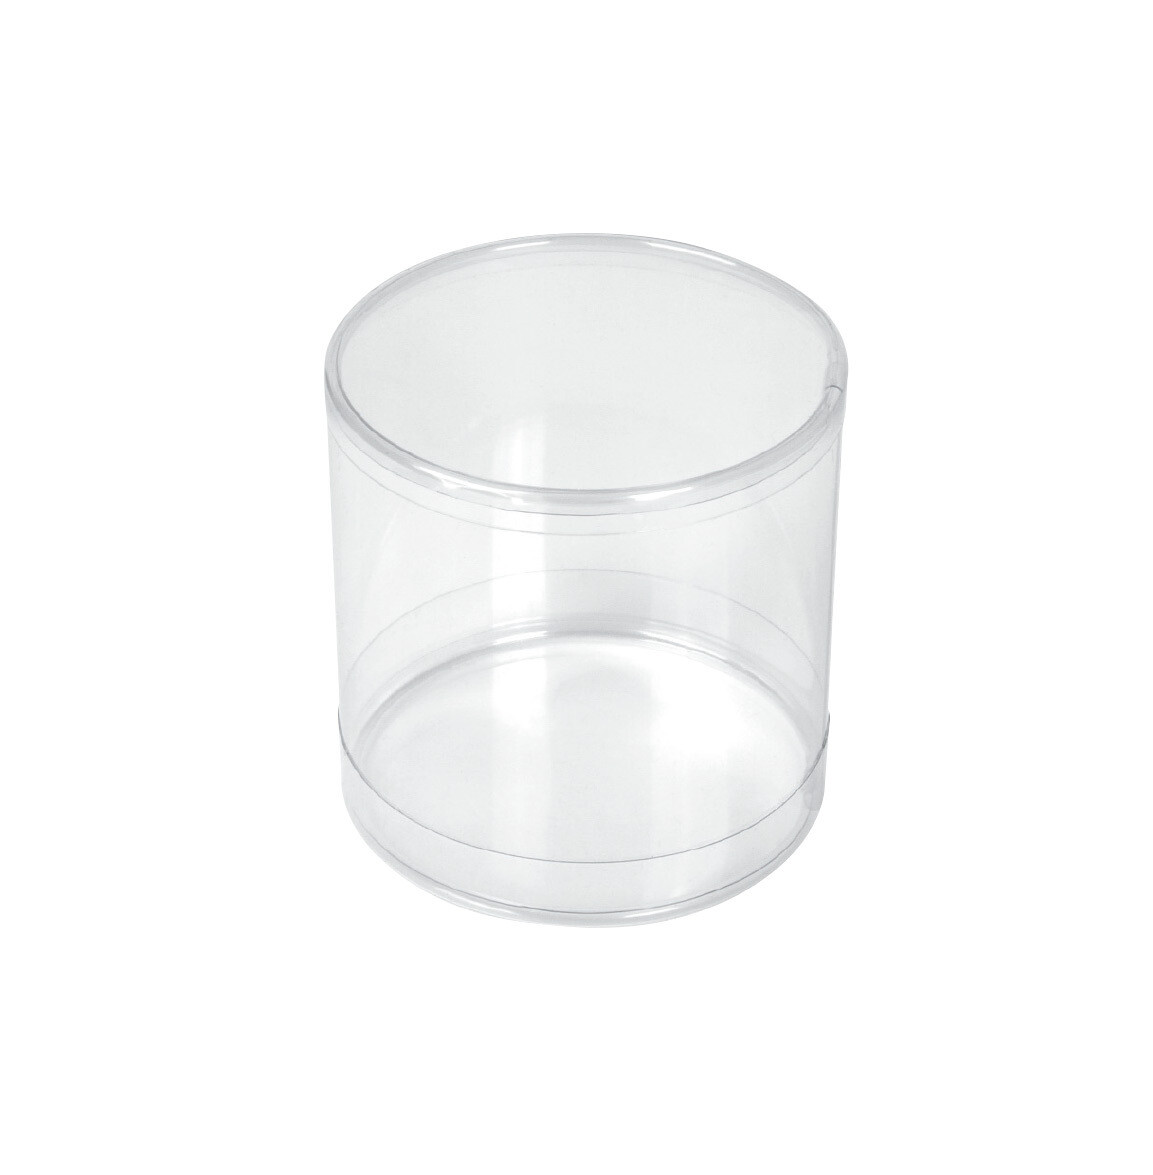 Cylinder PVC Container 2x2 Clear 12ct